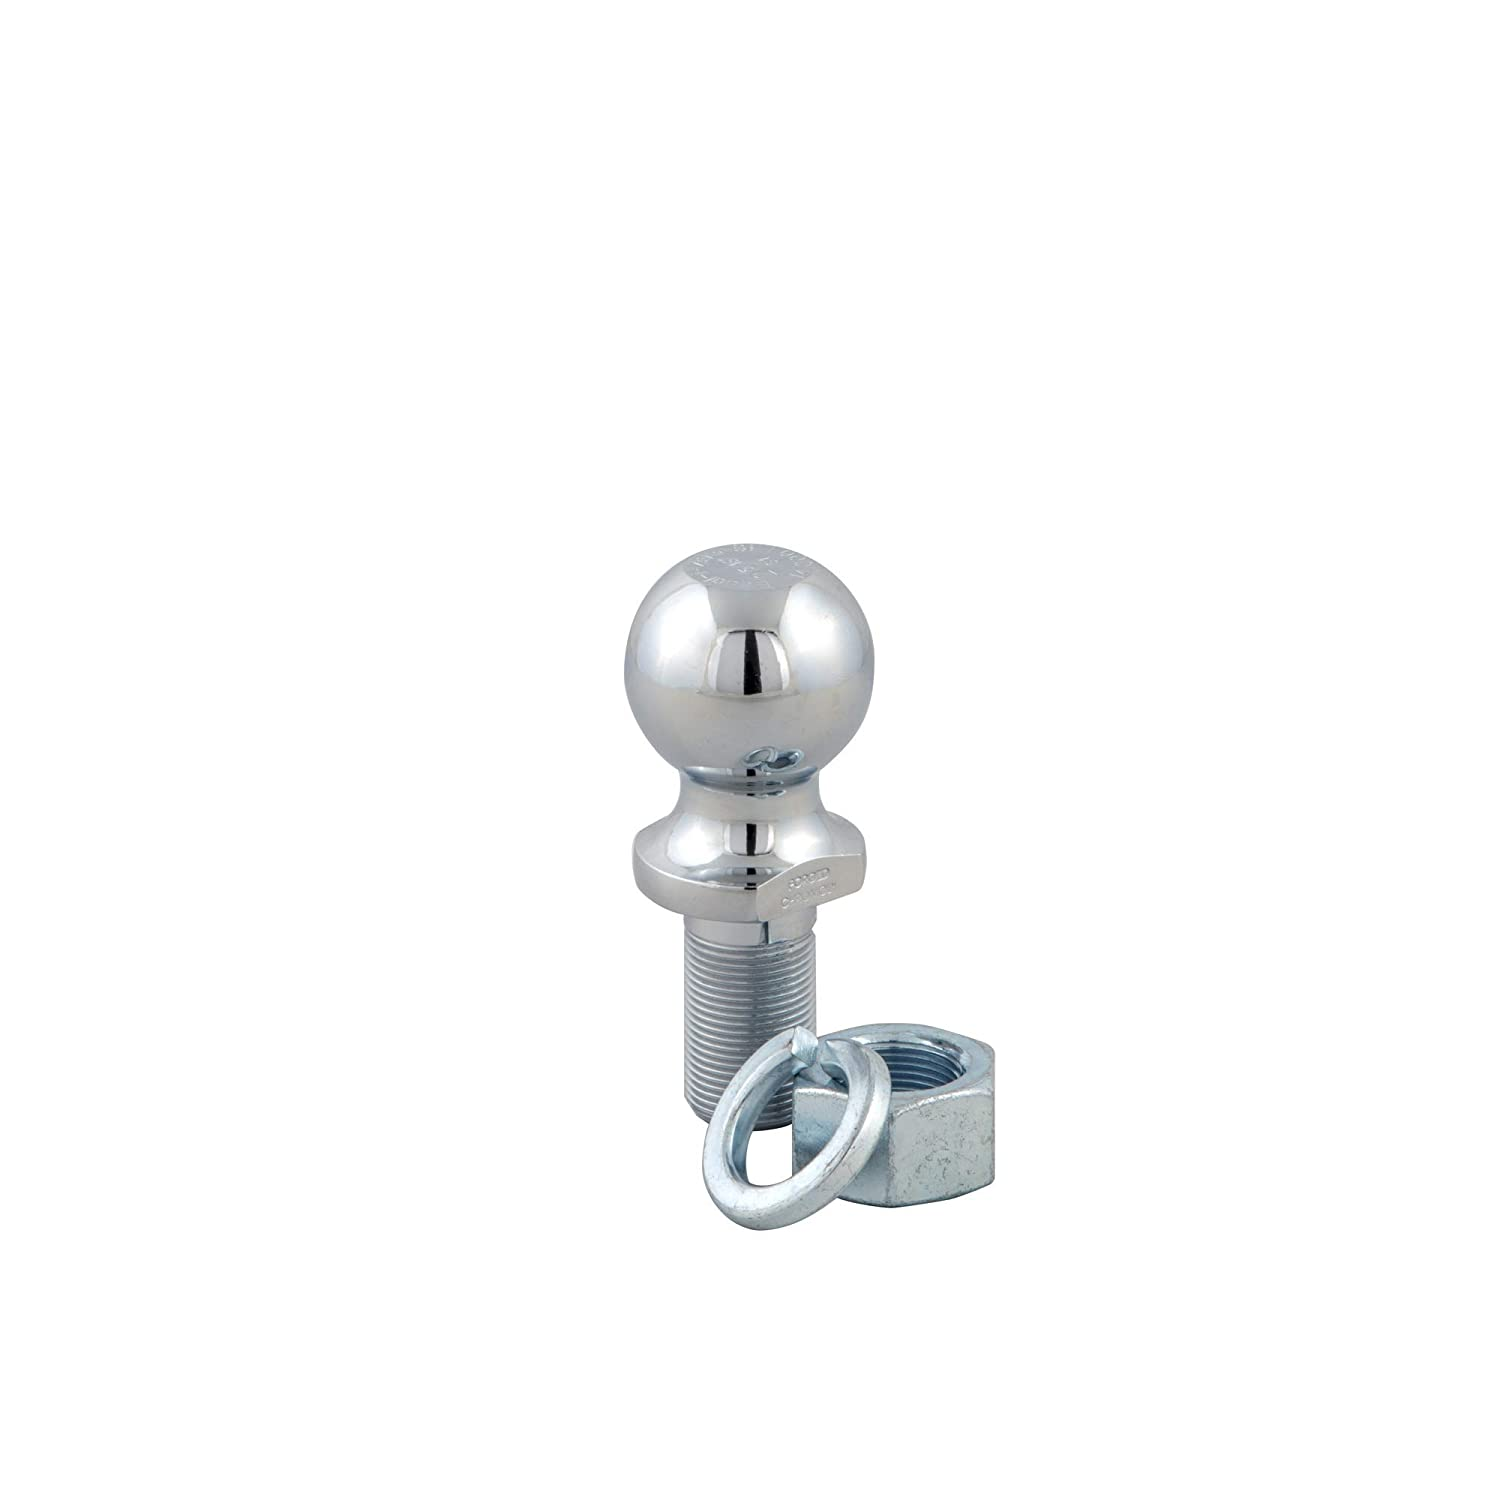 2 5//16 Equal-i-zer Hitch ball 12K